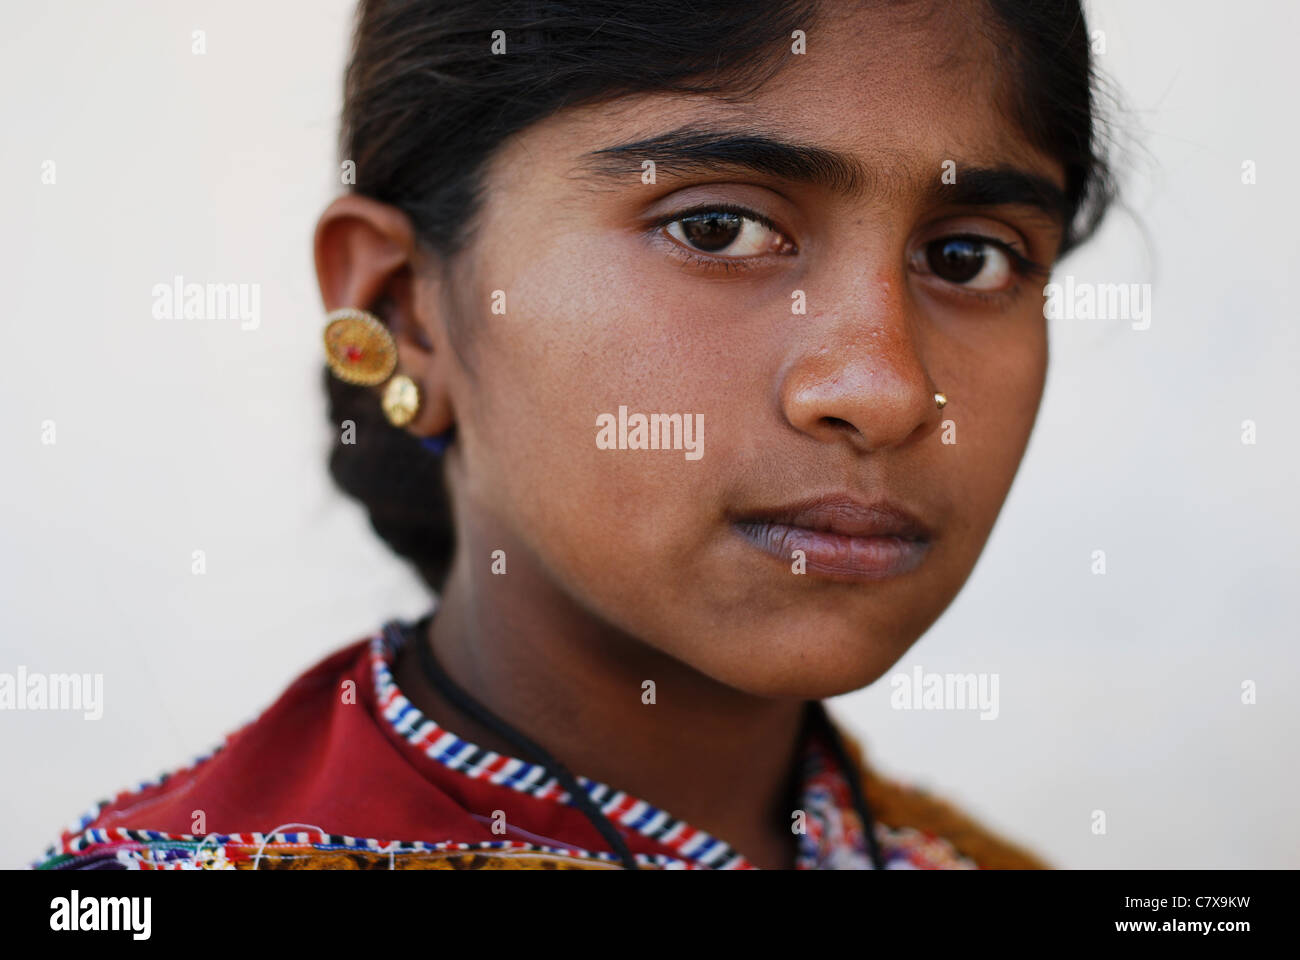 Portrait of a girl belonging to the Rabari caste, semi-nomadic shepherds living in western India. - Stock Image